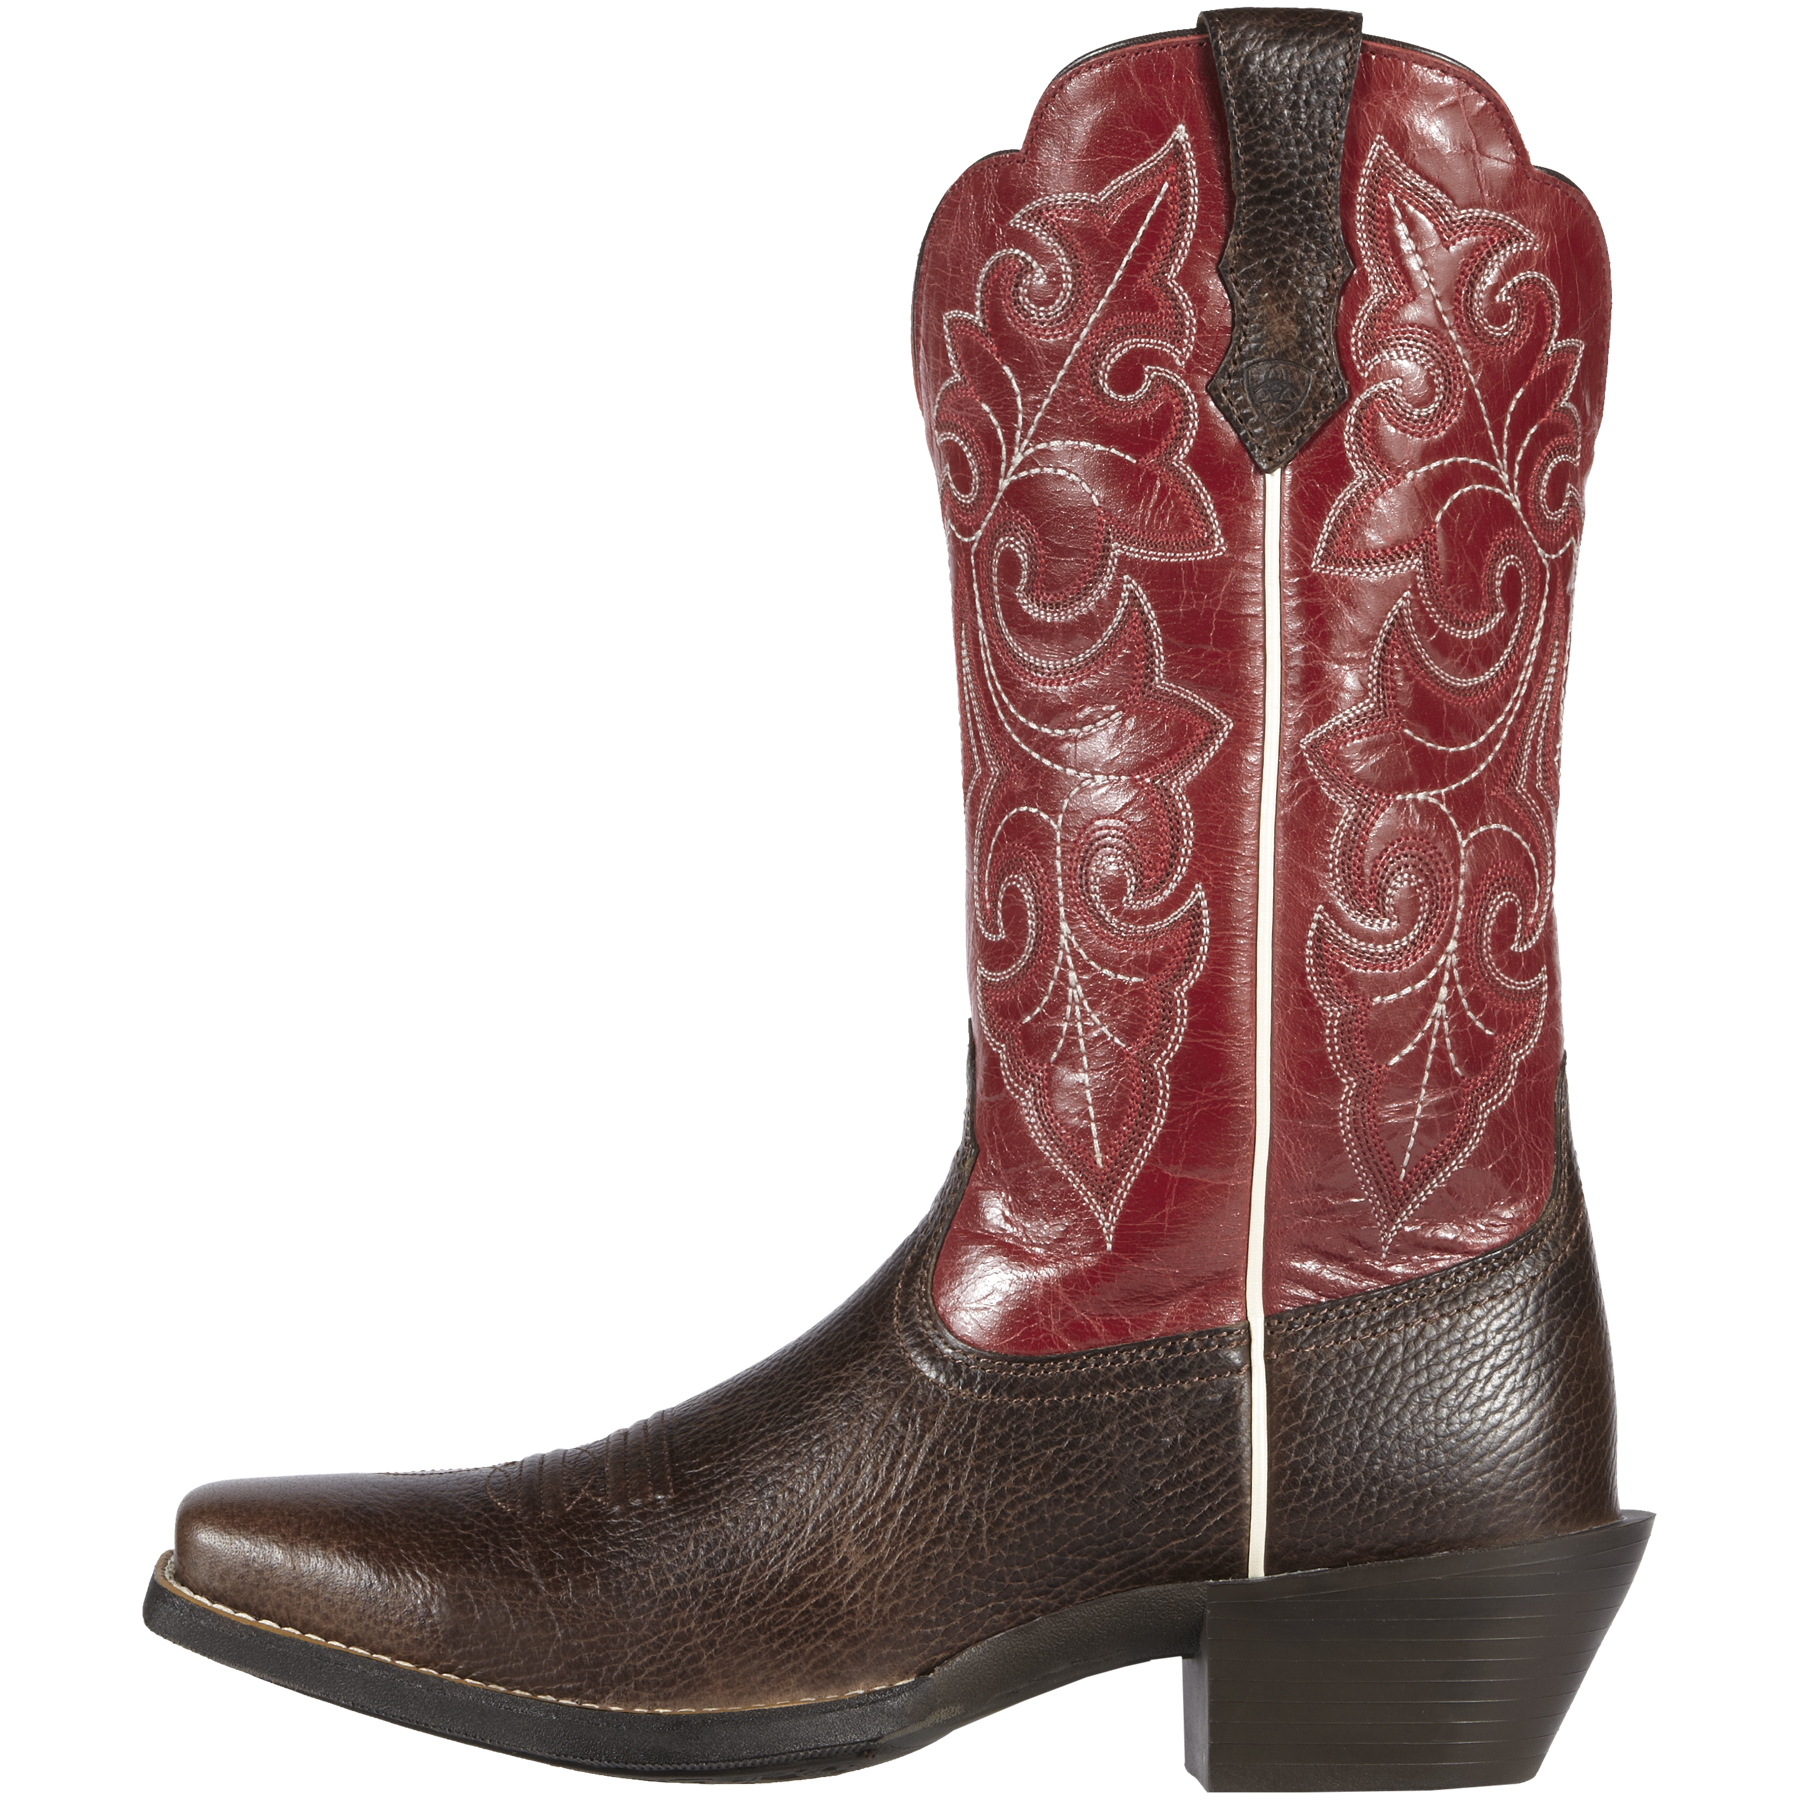 Ariat Men's Tan Fast Action Leather Cowboy Boots - Square Toe $ Original Price $ Sale $ (20% Coupon) $ 33% Total Savings Warehouse In Stock.